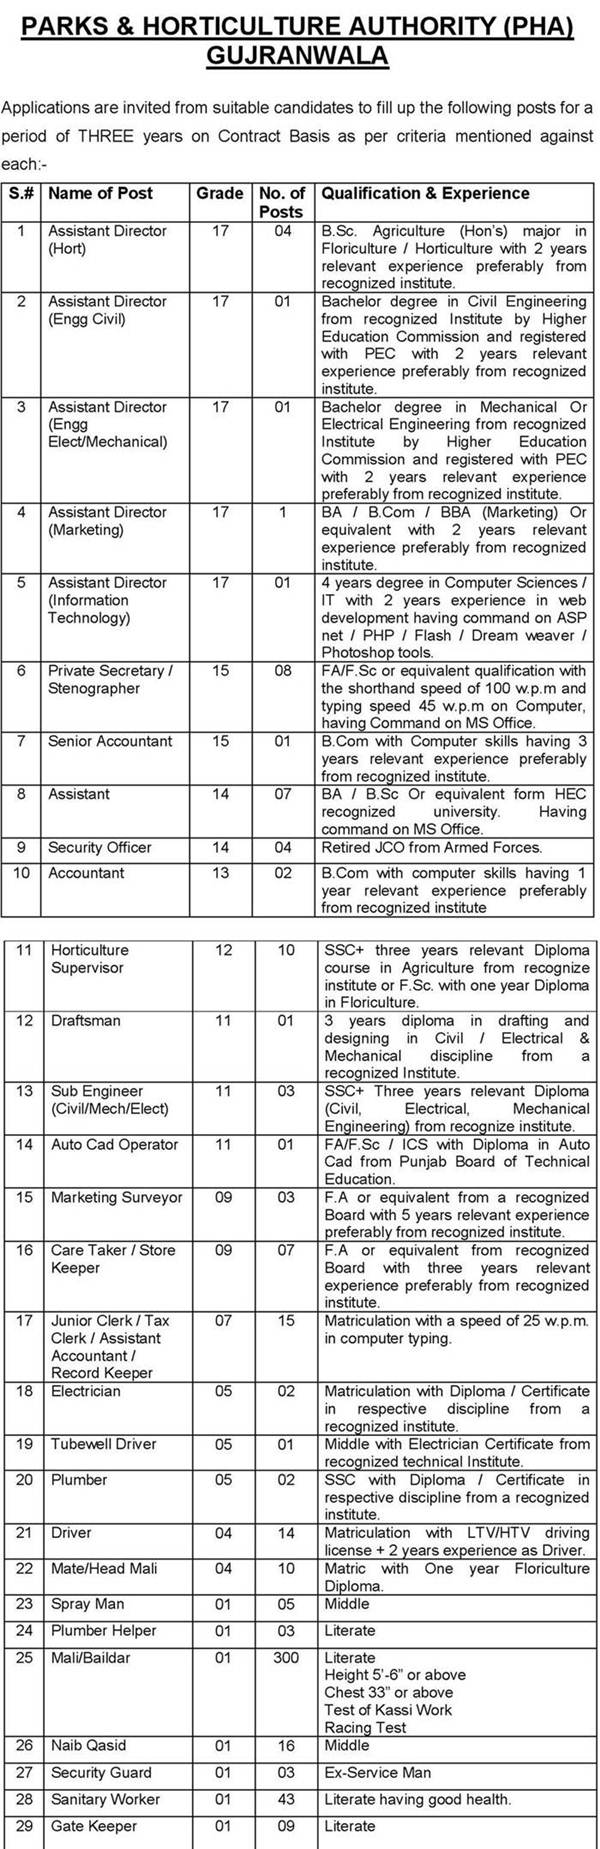 Parks & Horticulture Authority (PHA) Gujranwala Jobs 2015 NTS Test Preparation